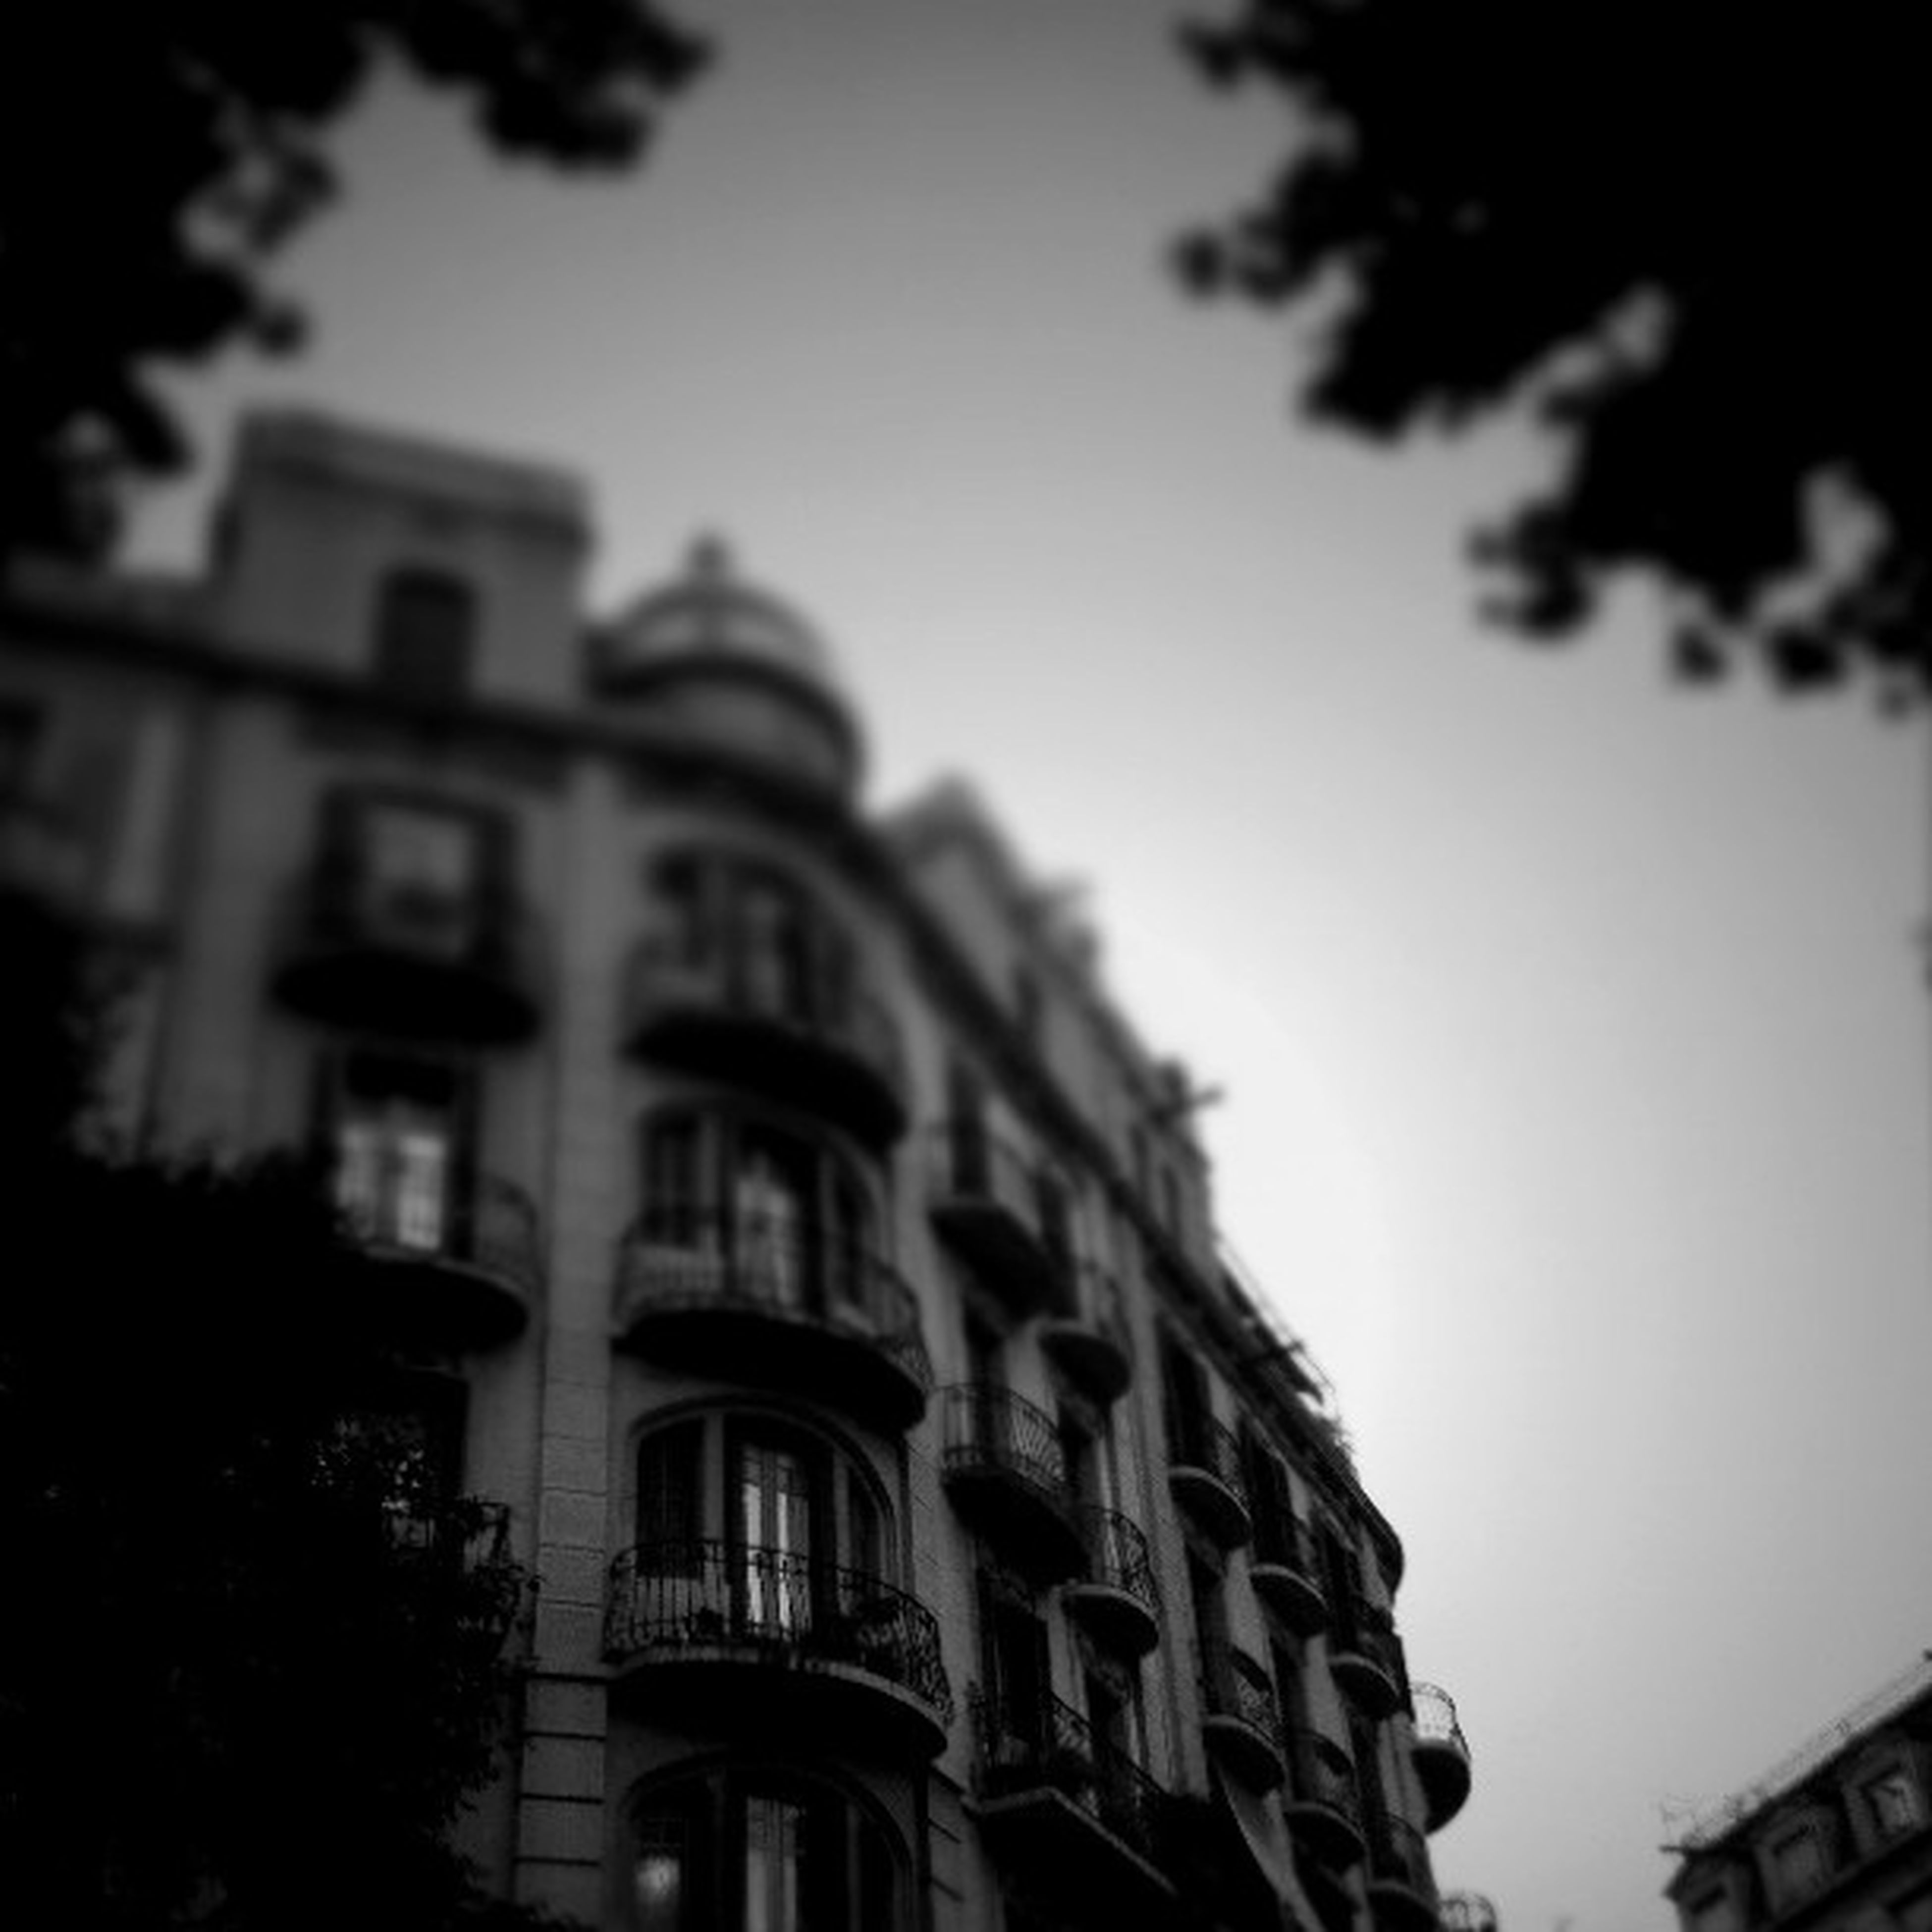 architecture, building exterior, built structure, low angle view, window, building, residential structure, sky, residential building, city, clear sky, house, outdoors, tree, no people, day, high section, dusk, balcony, facade